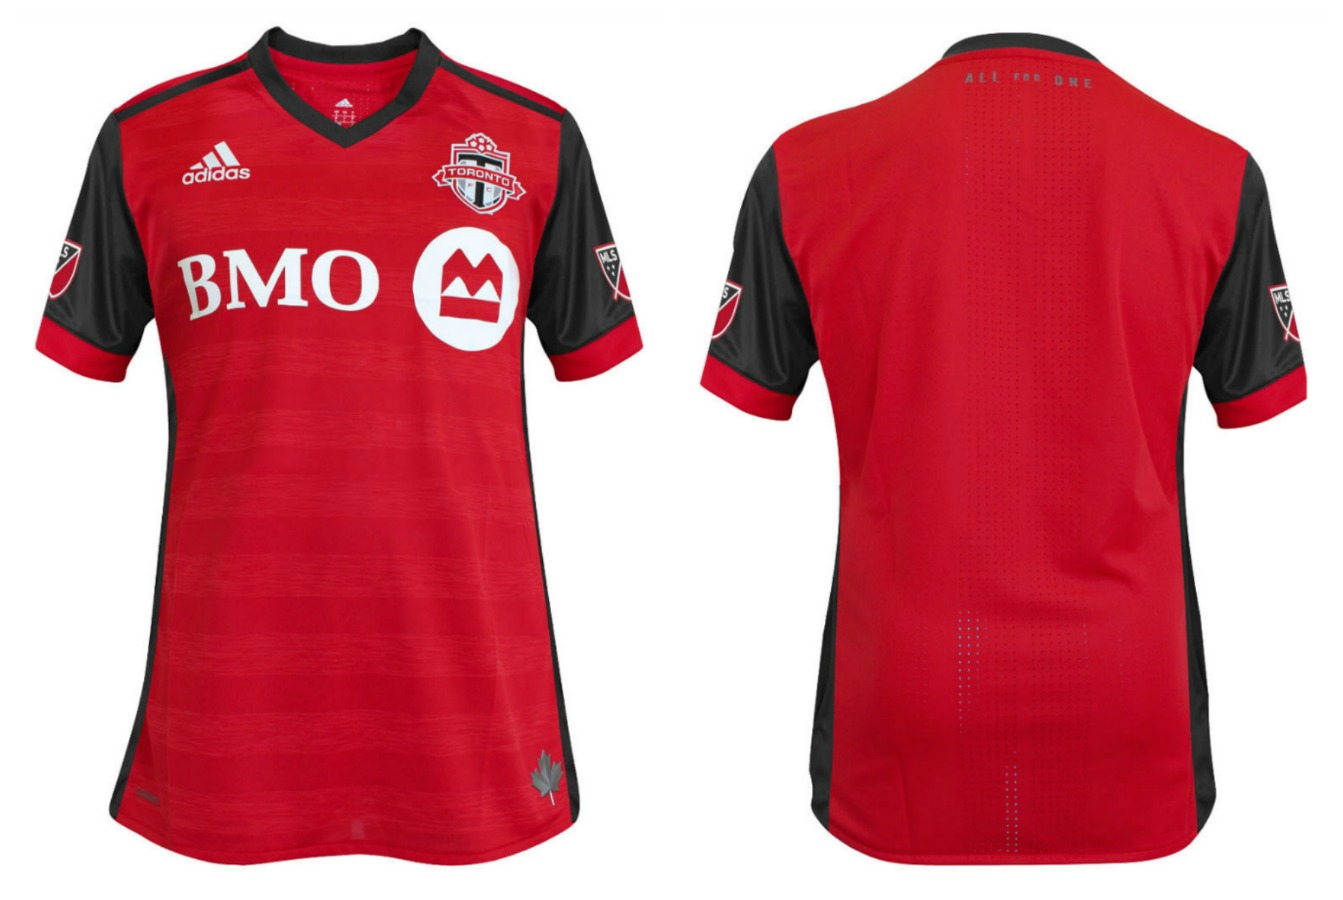 timeless design 0418b 6775b Toronto FC 2017 adidas Home Jersey - FOOTBALL FASHION.ORG